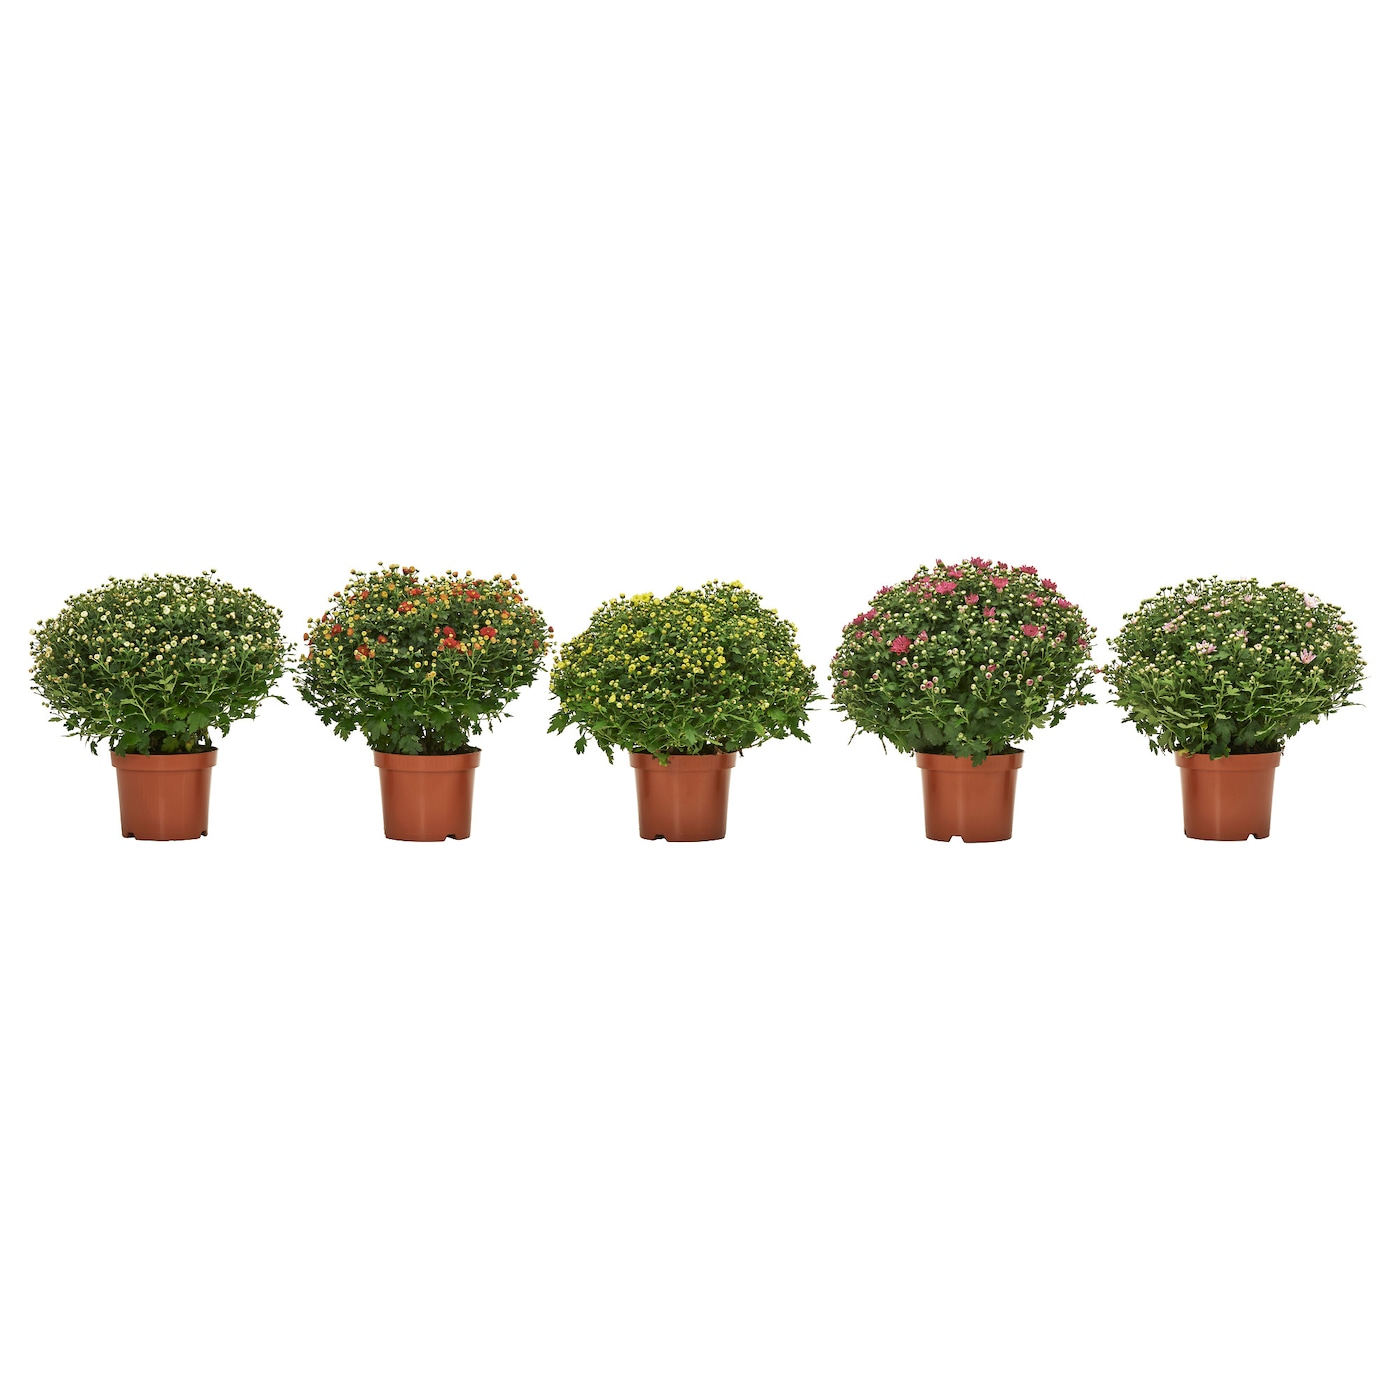 chrysanthemum plante en pot coloris assortis 17 cm ikea. Black Bedroom Furniture Sets. Home Design Ideas